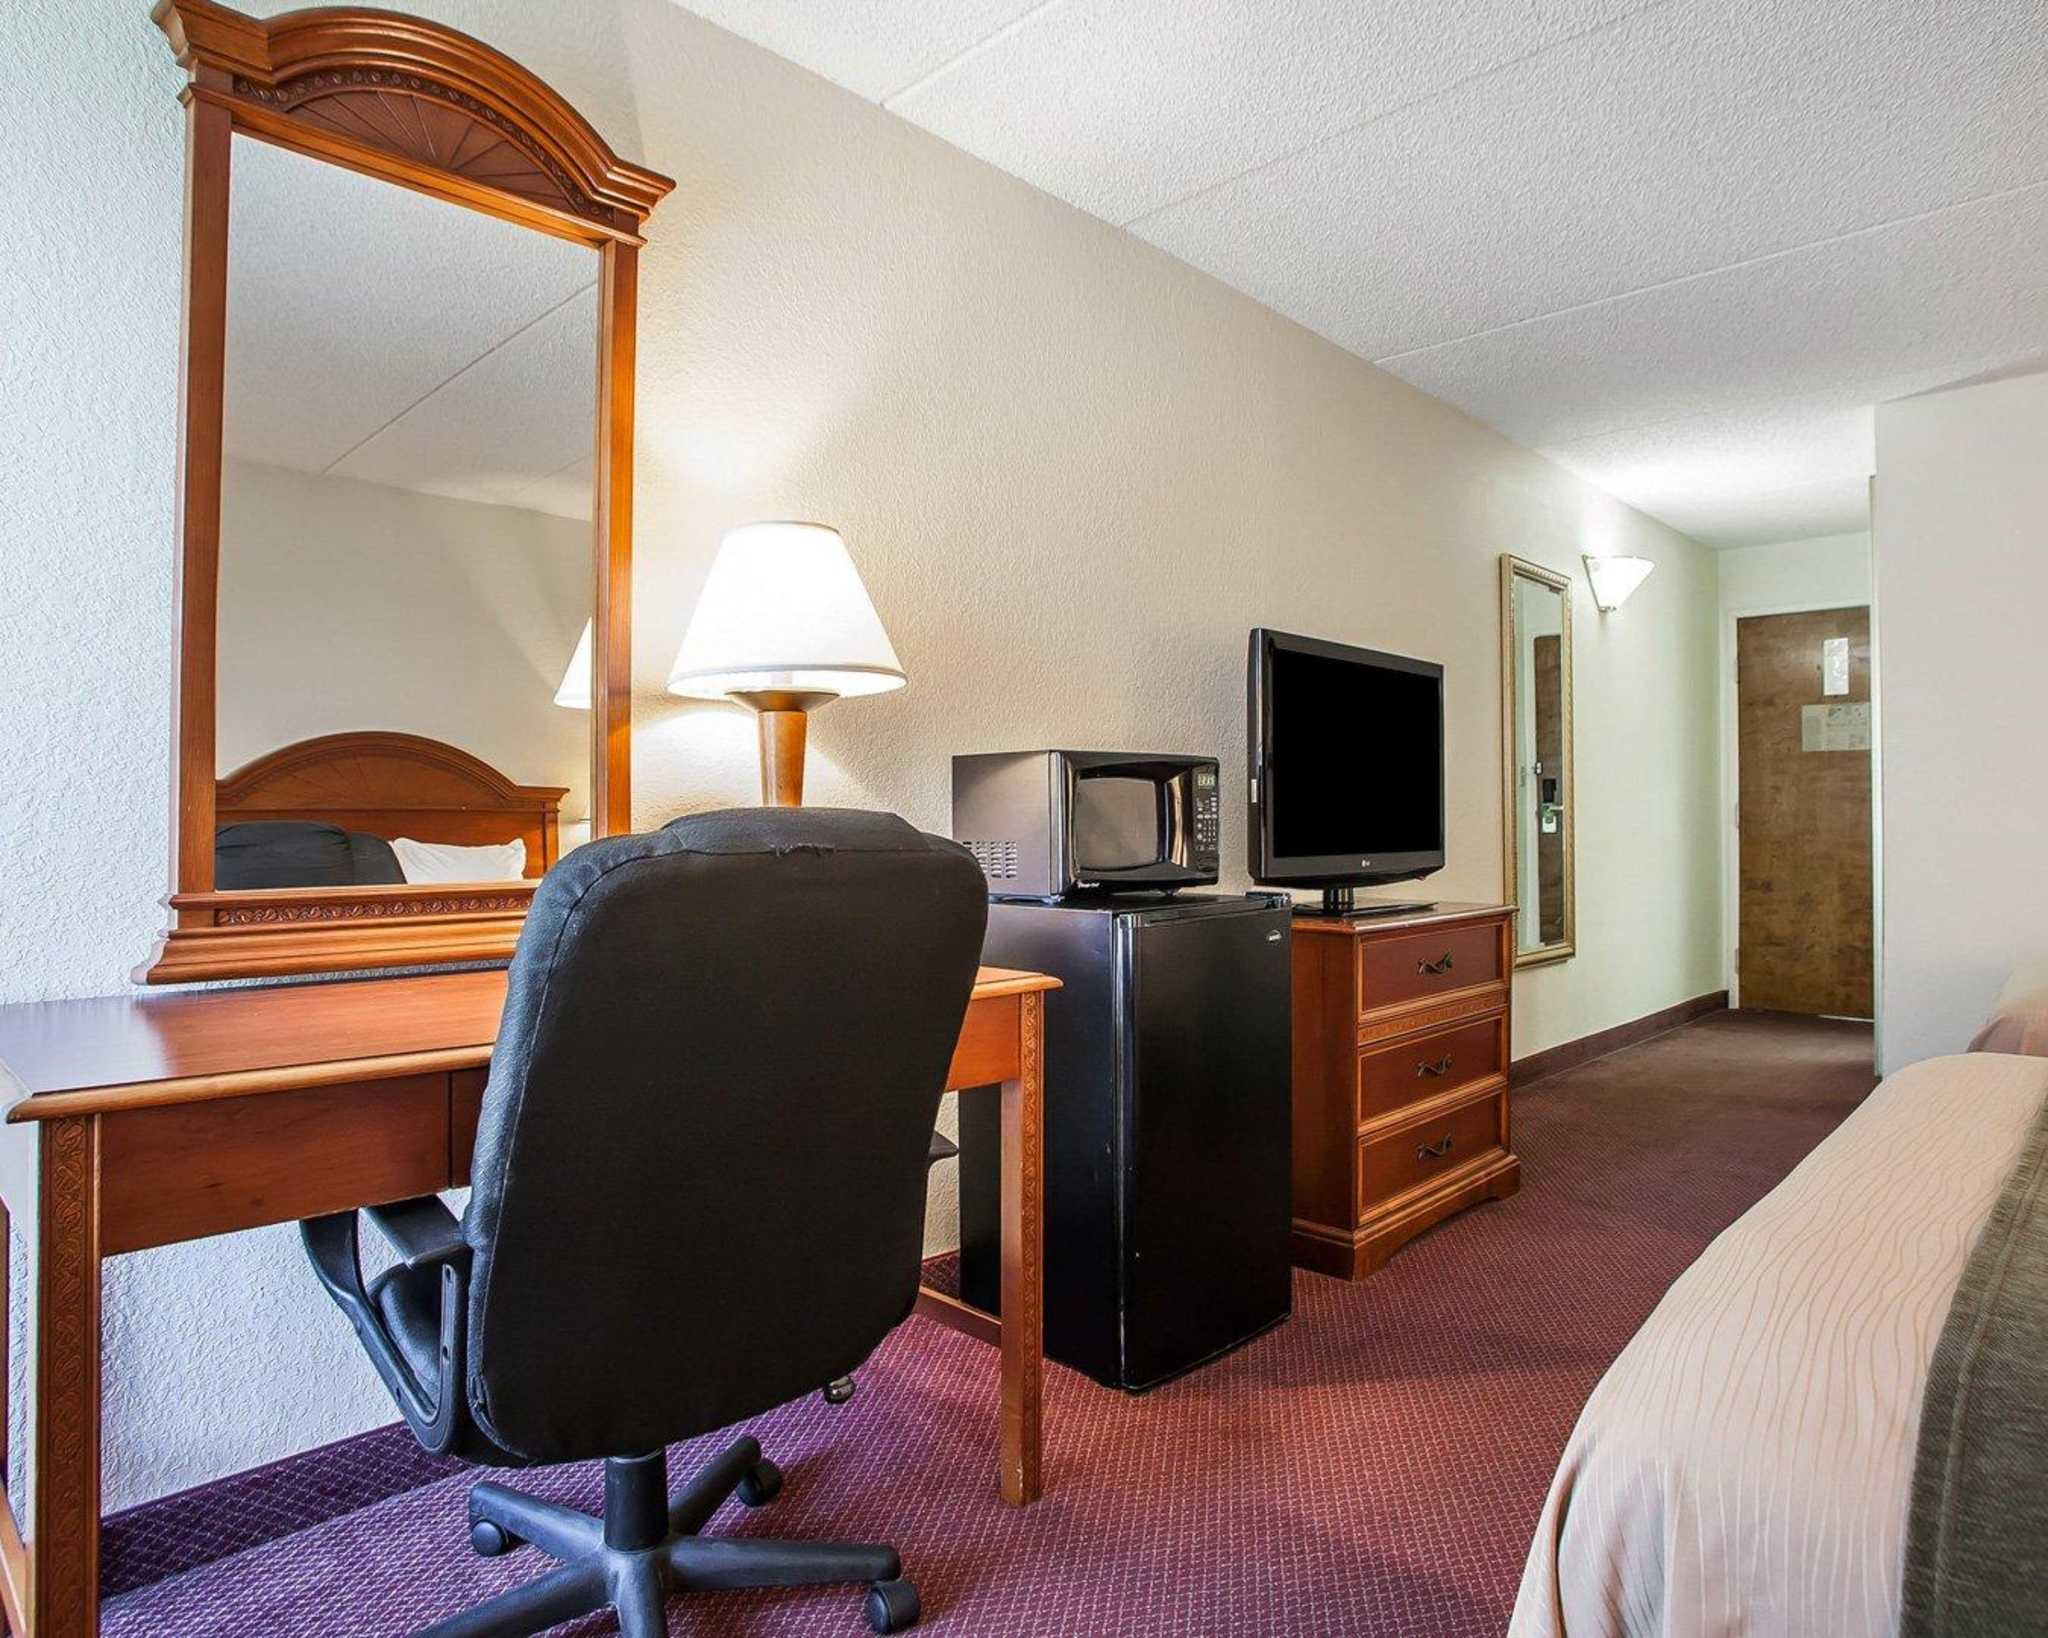 Comfort Inn Lehigh Valley West image 14